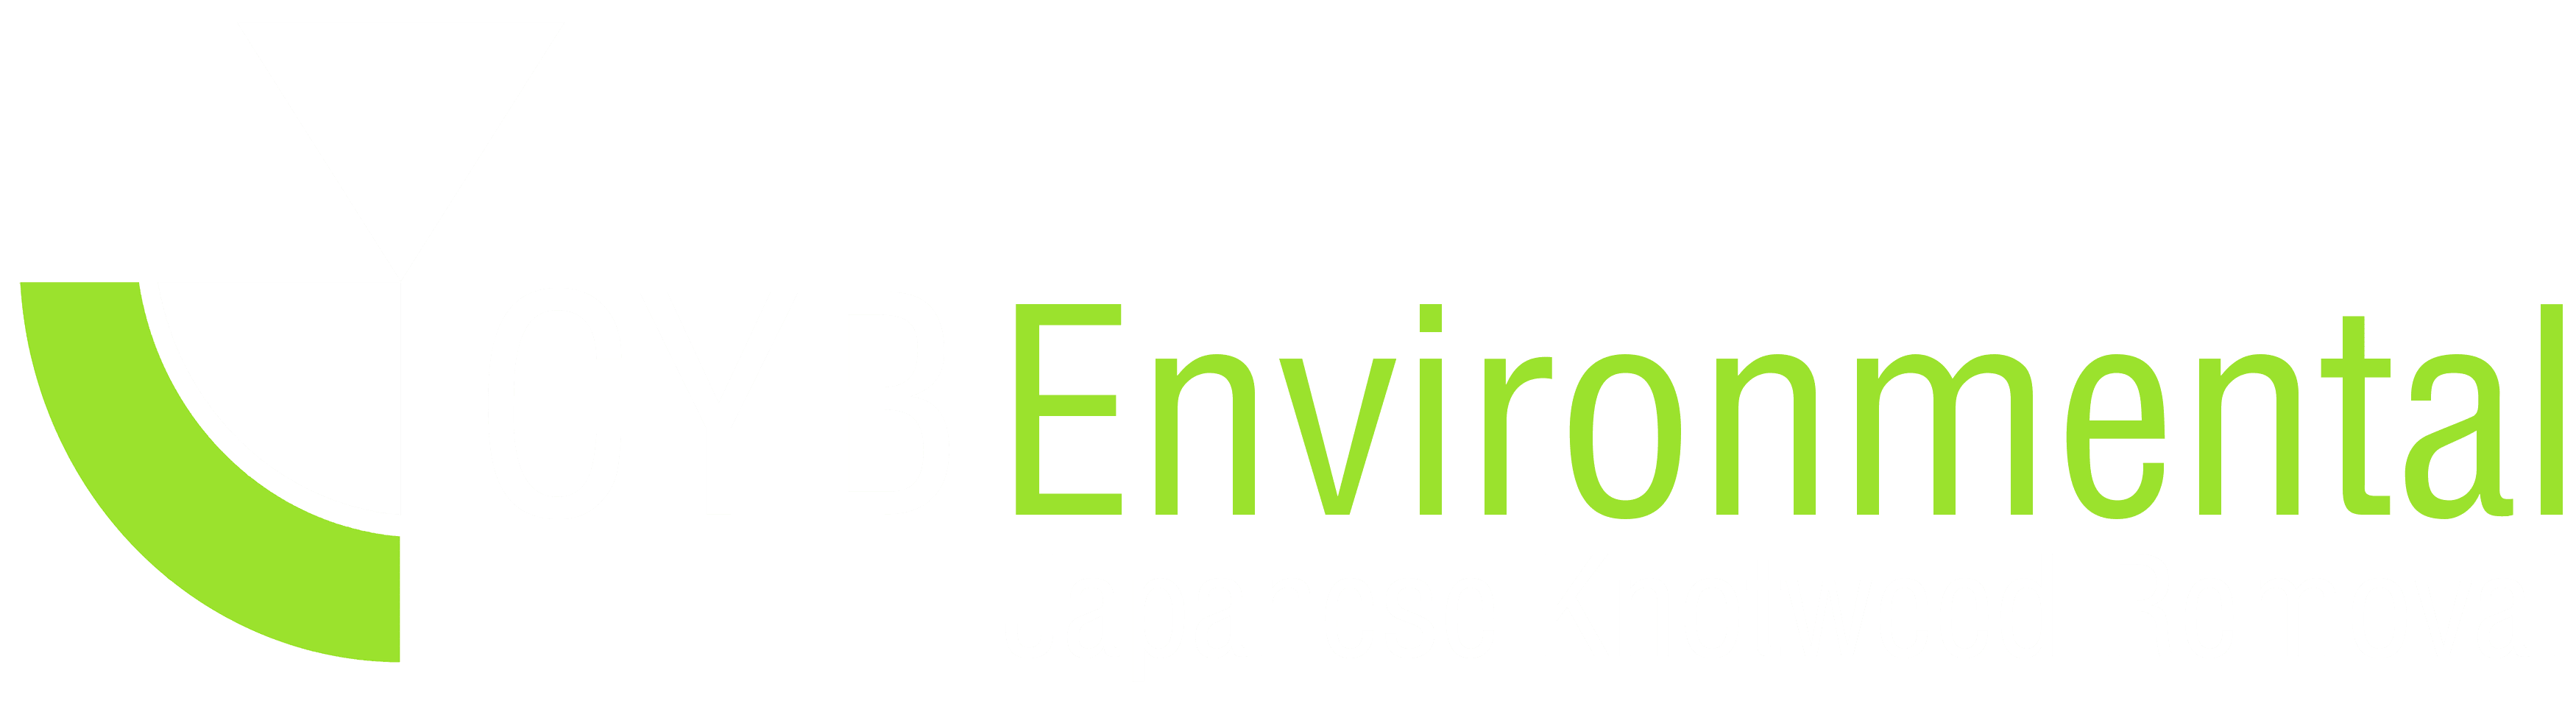 cyb environmental banner - japanese knotweed removal specialists based in london cardiff and bristol